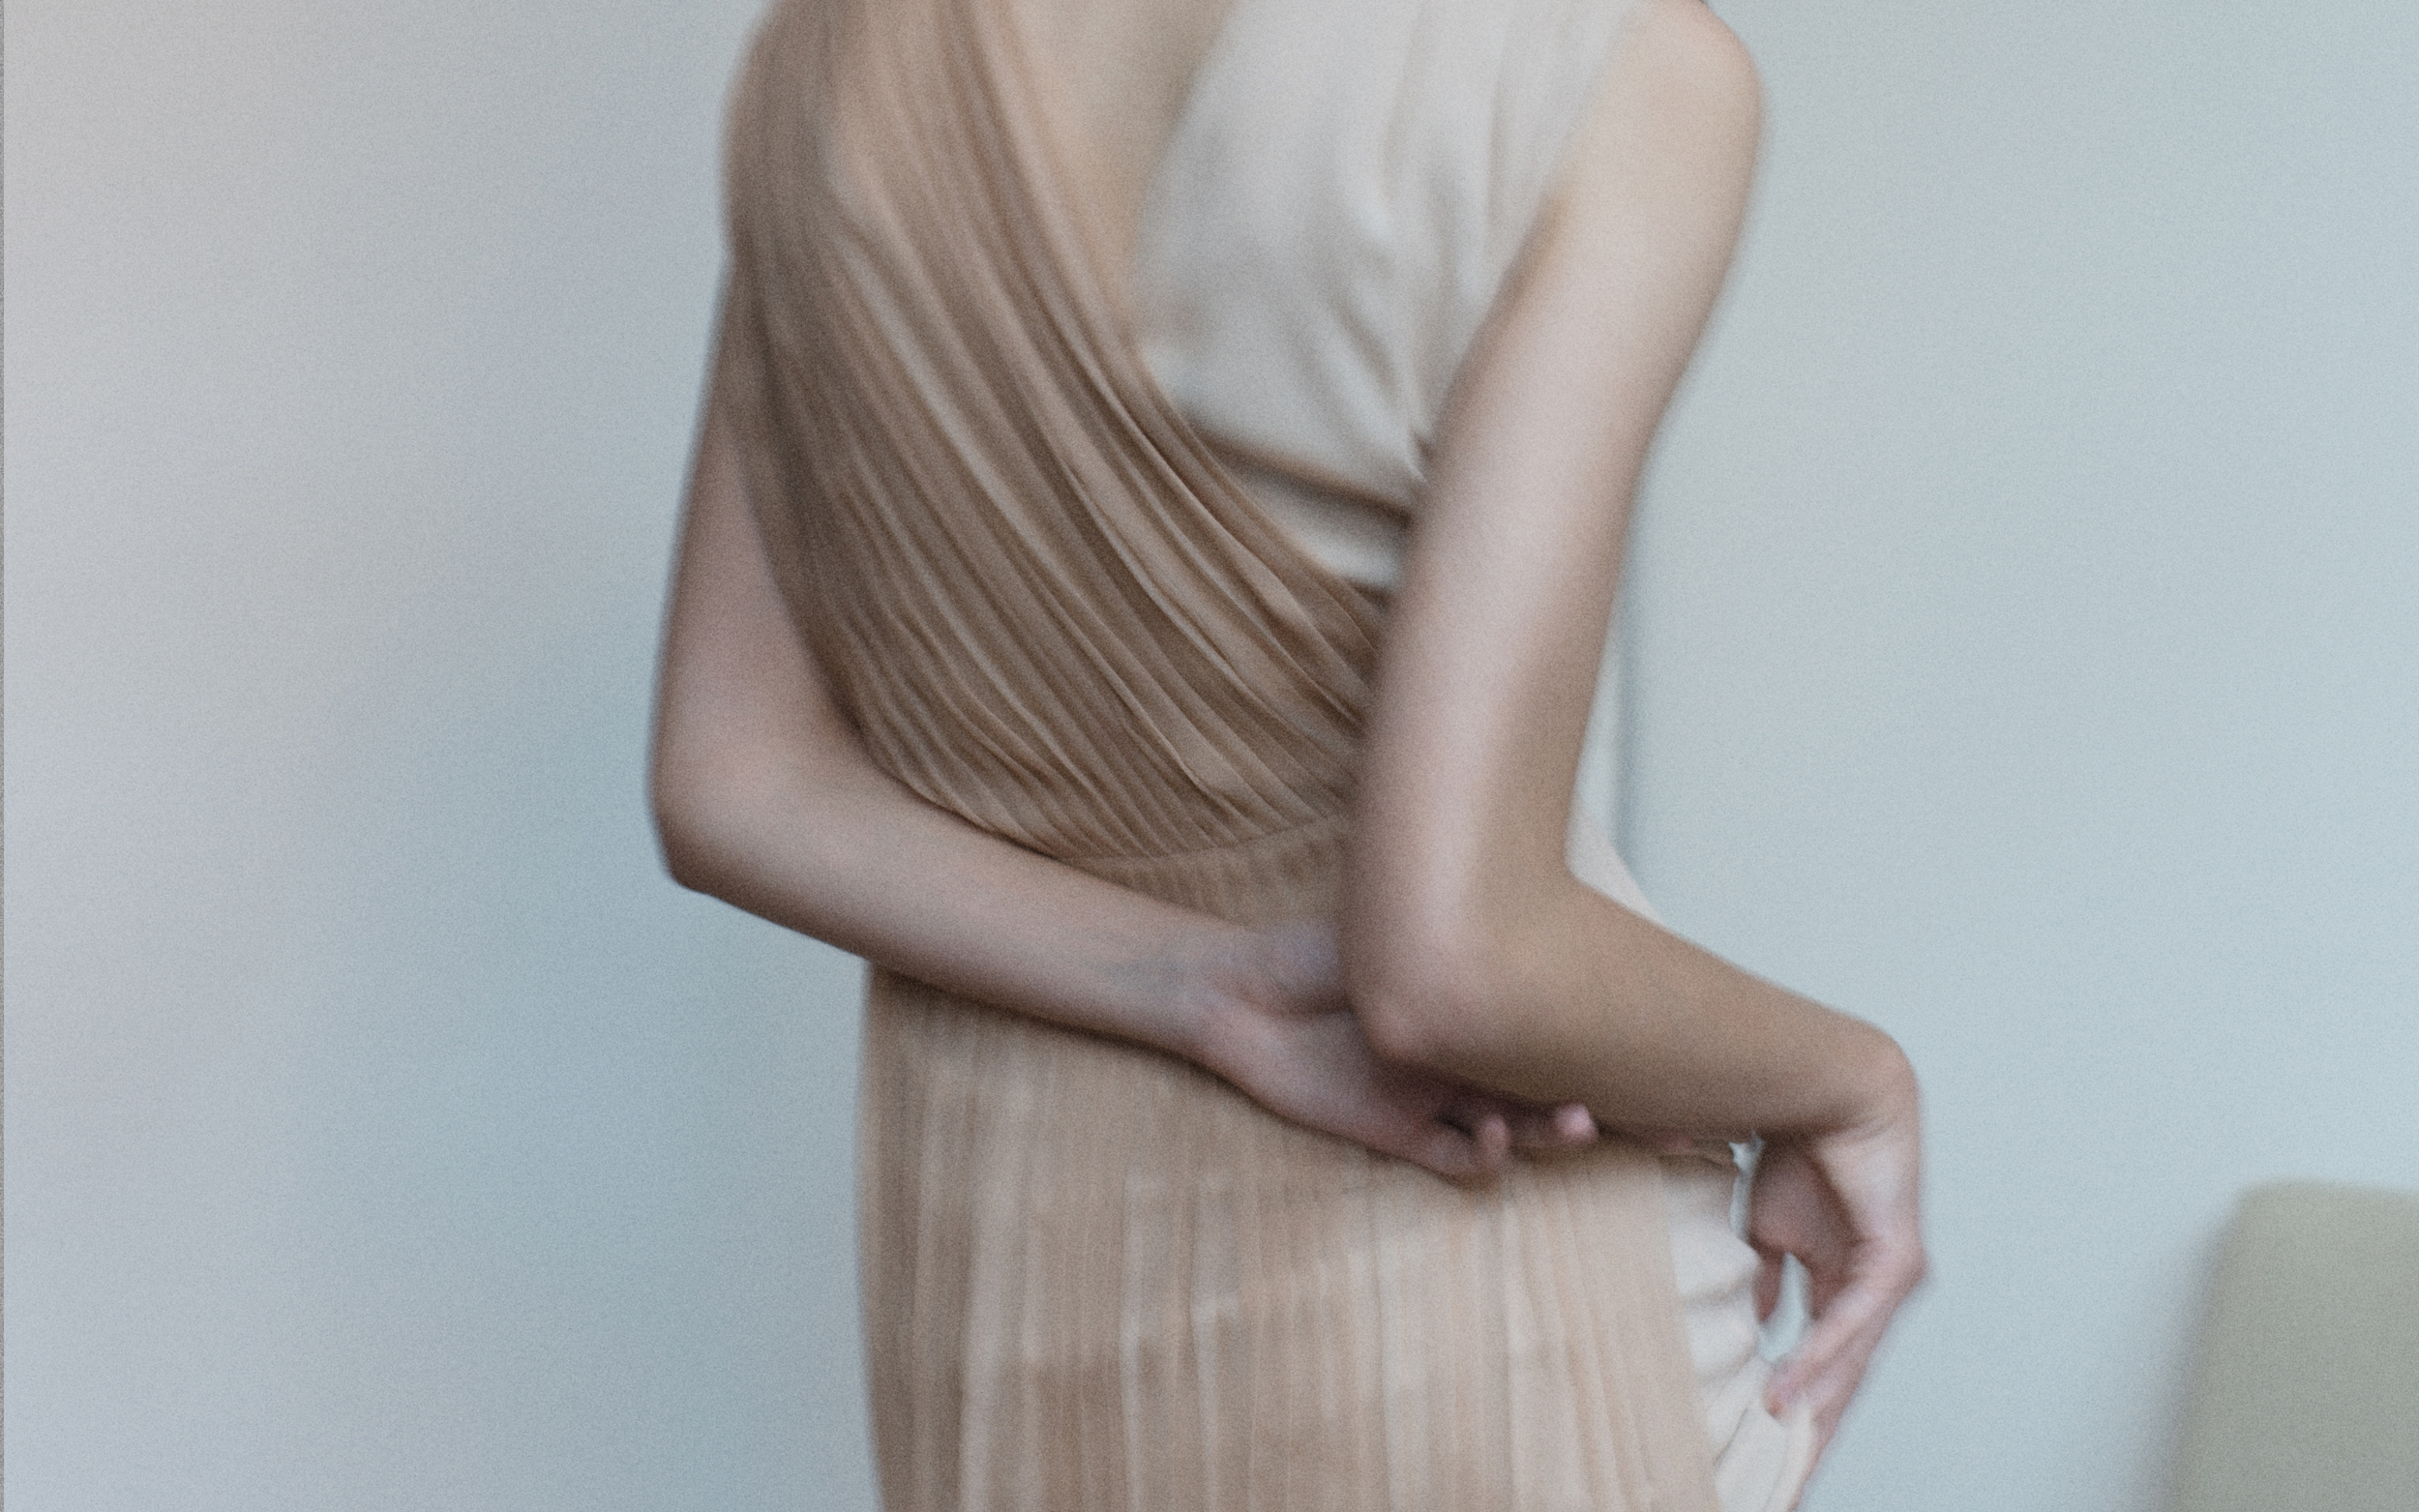 dominik_tarabanski_-_calendar_2015_lato_no_layout_07_crop.jpg